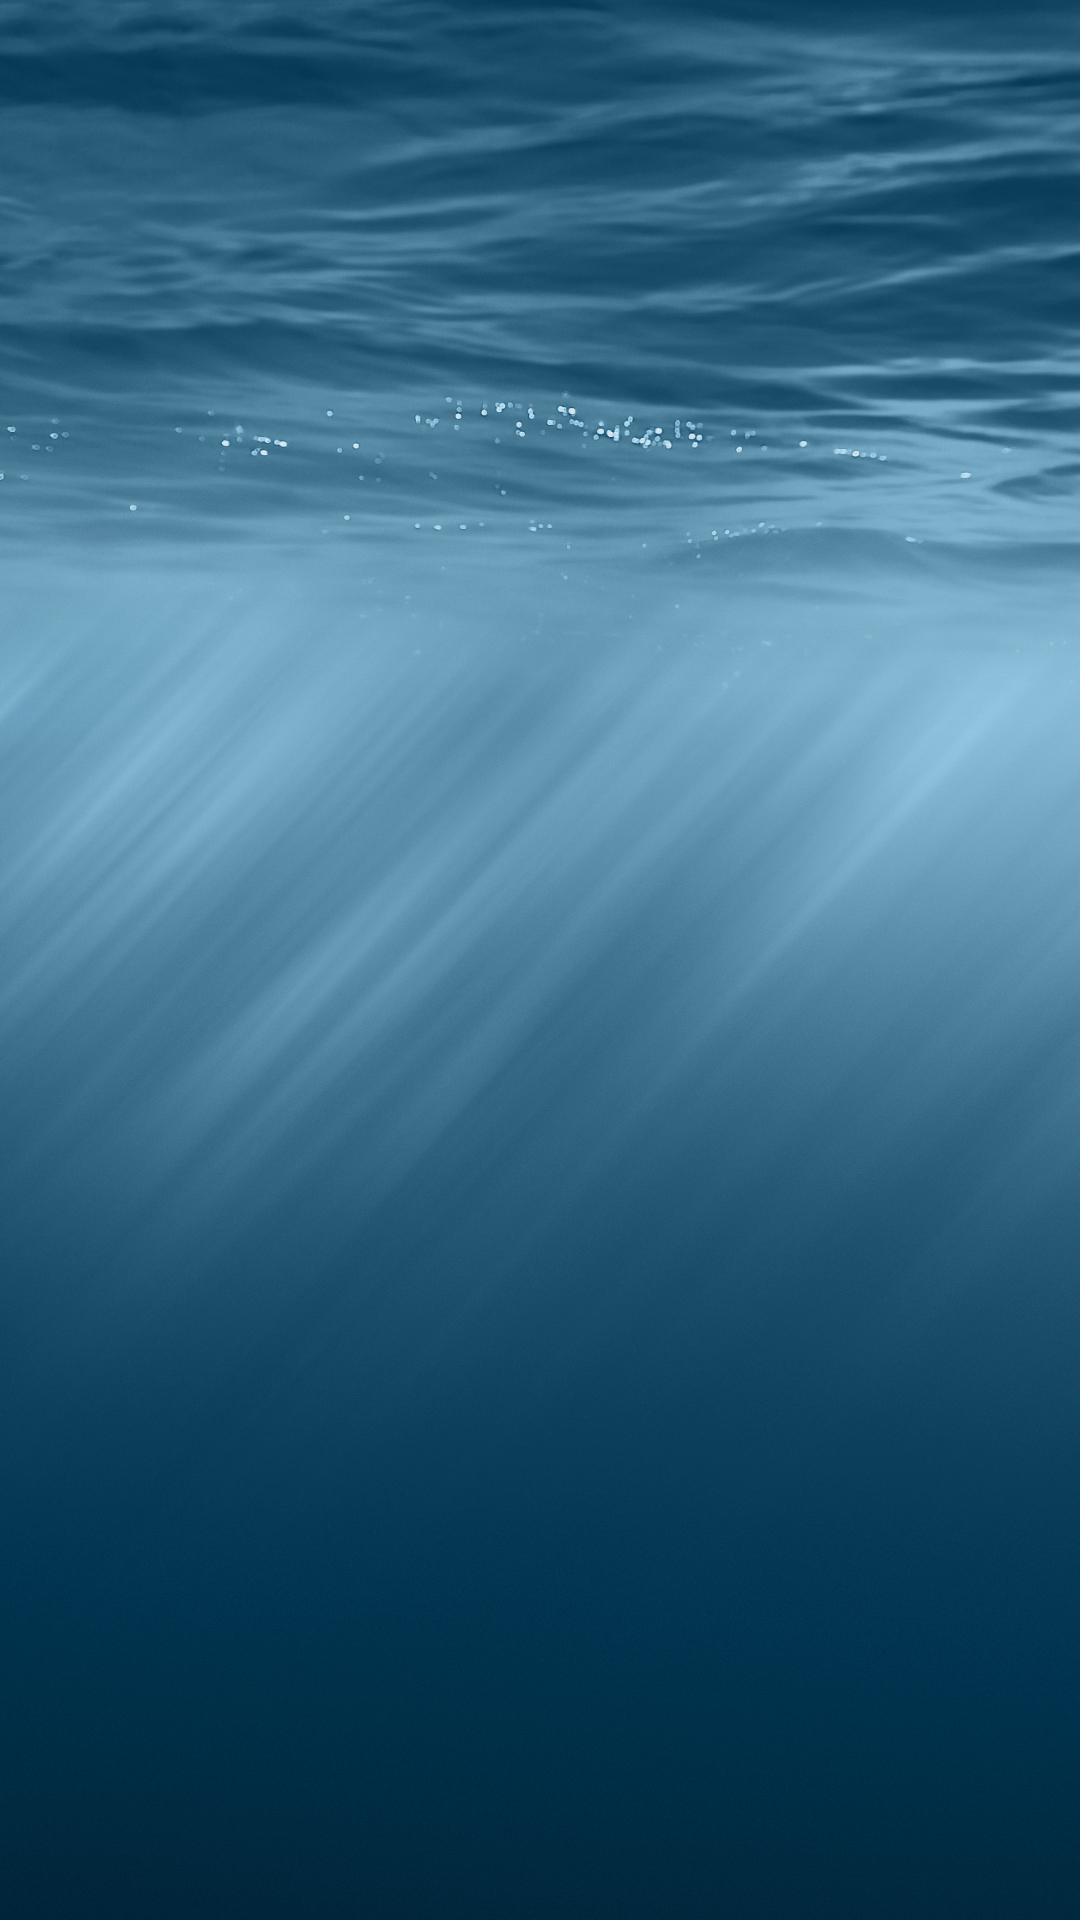 Apple iOS 8 Underwater iPhone 6 Plus HD Wallpaper iPod Wallpaper HD 1080x1920